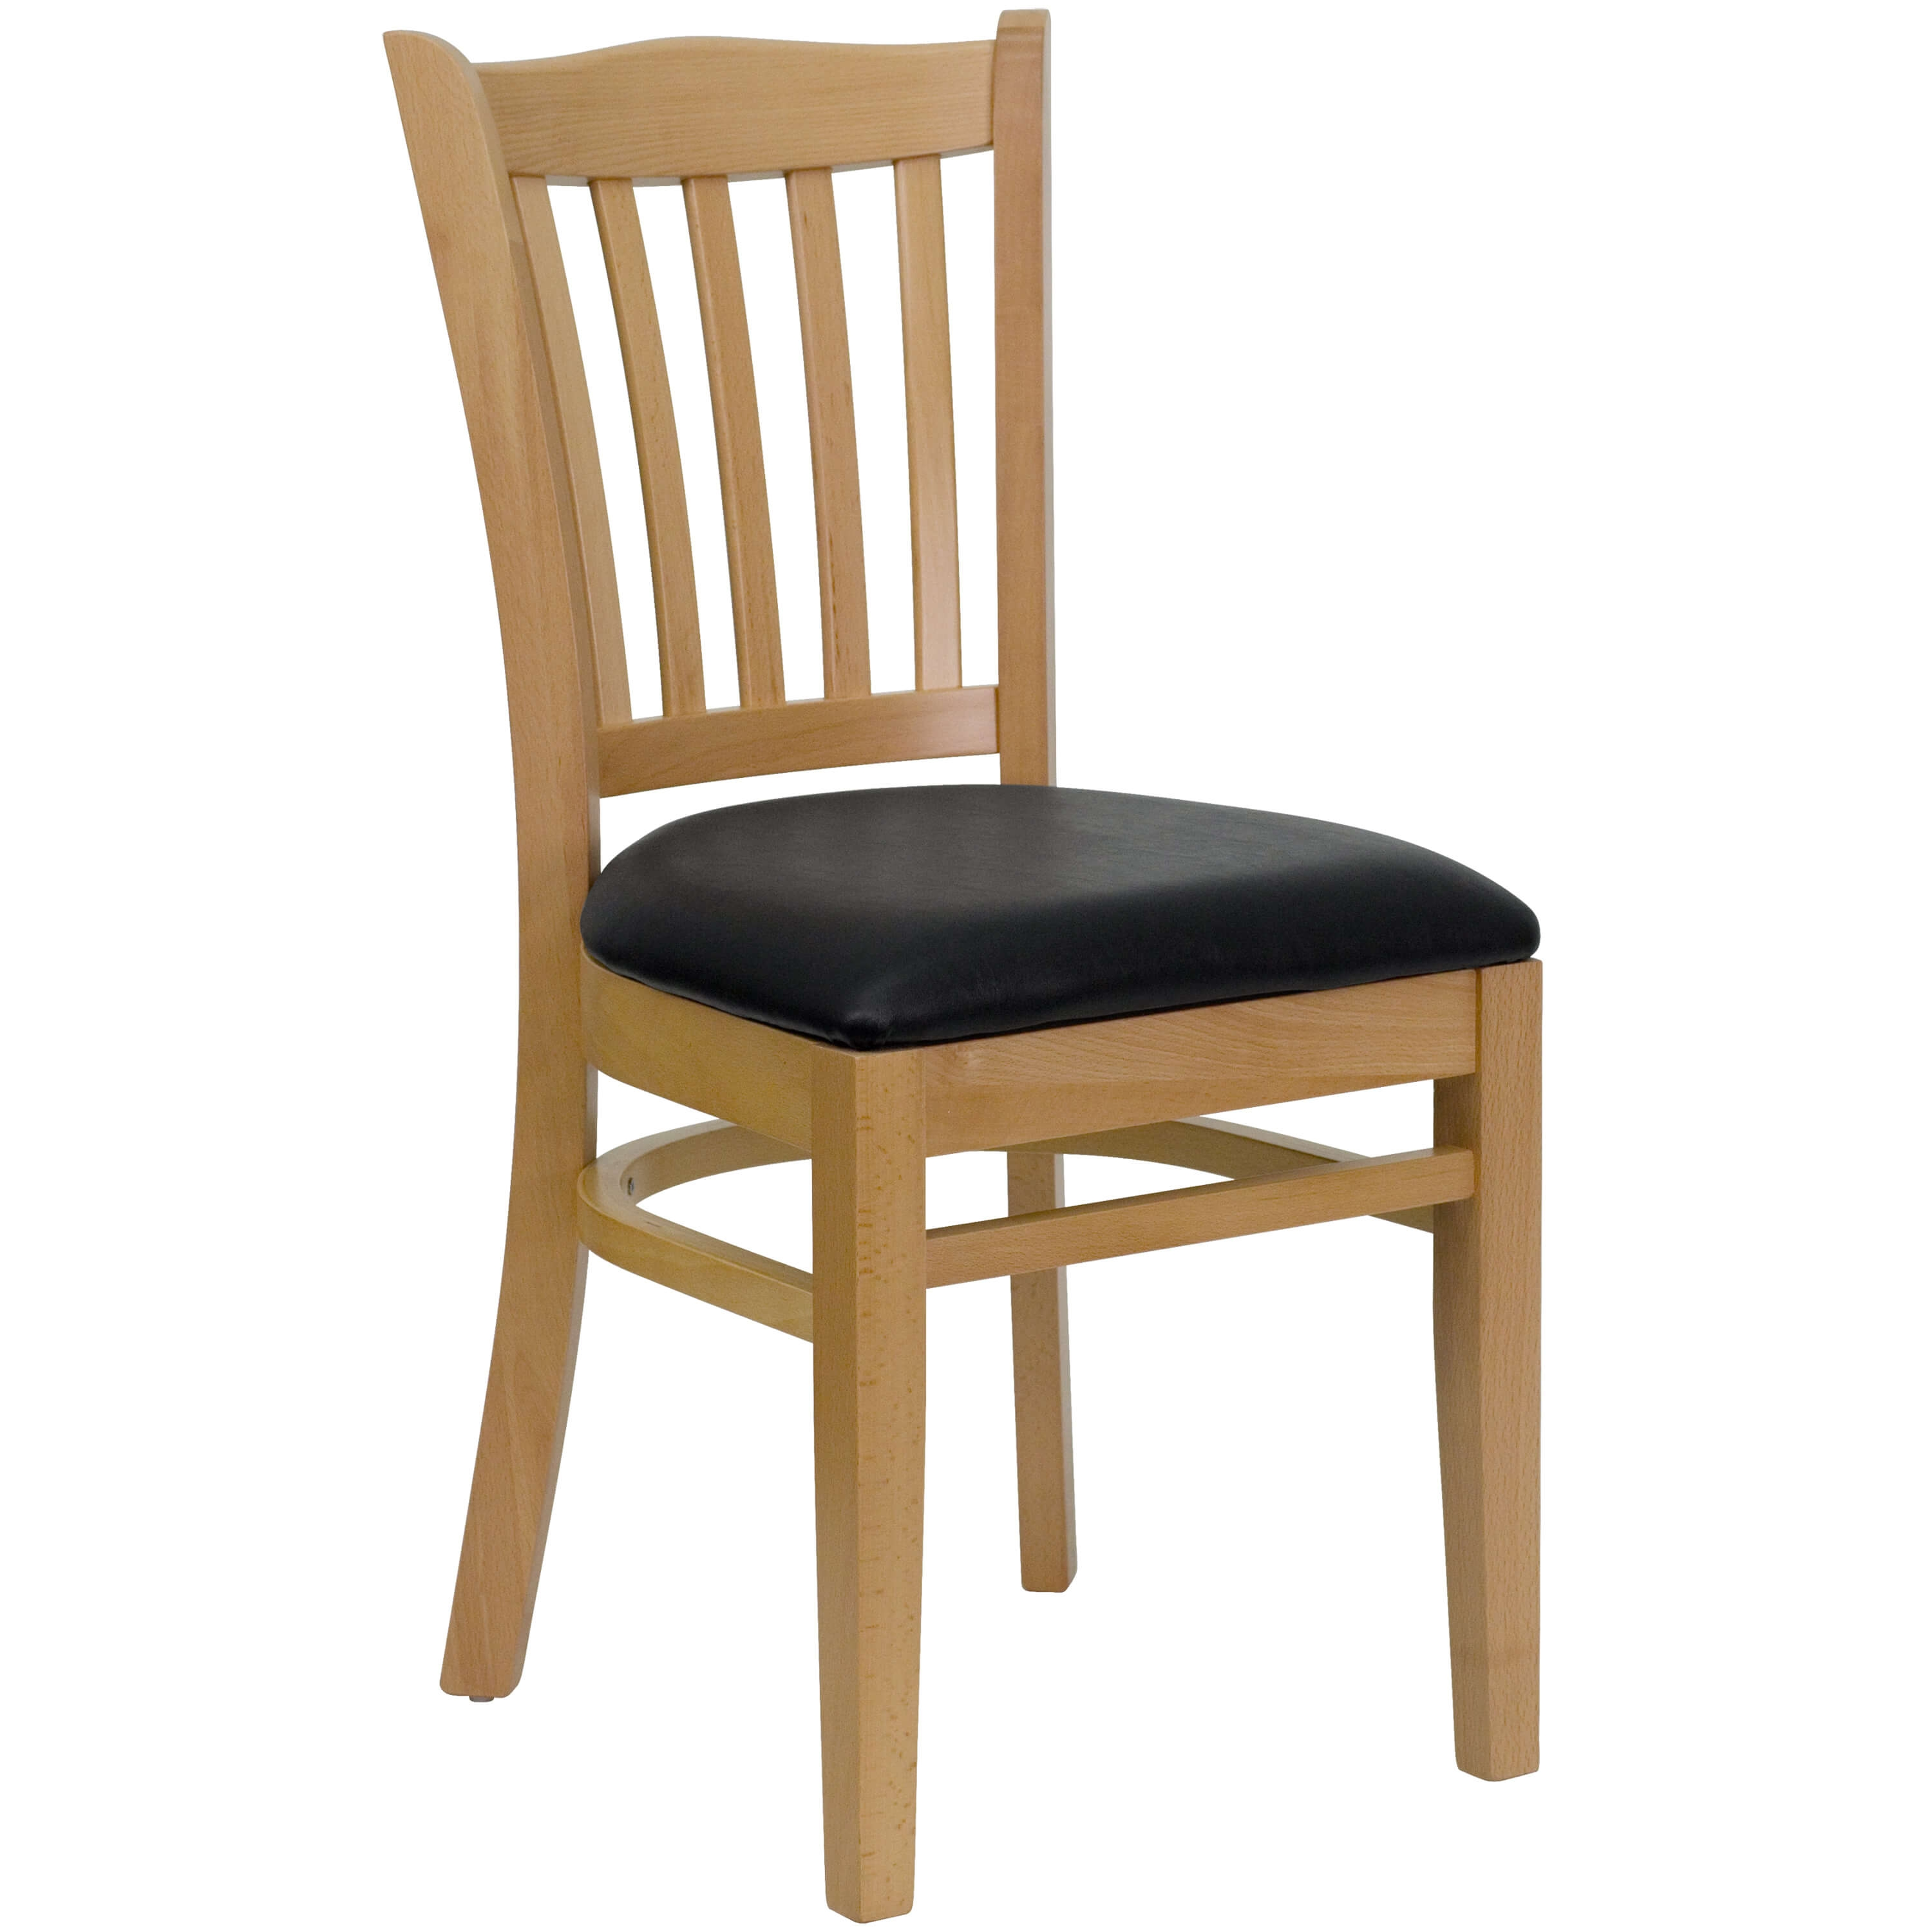 Restaurant tables and chairs vertical slat back chair